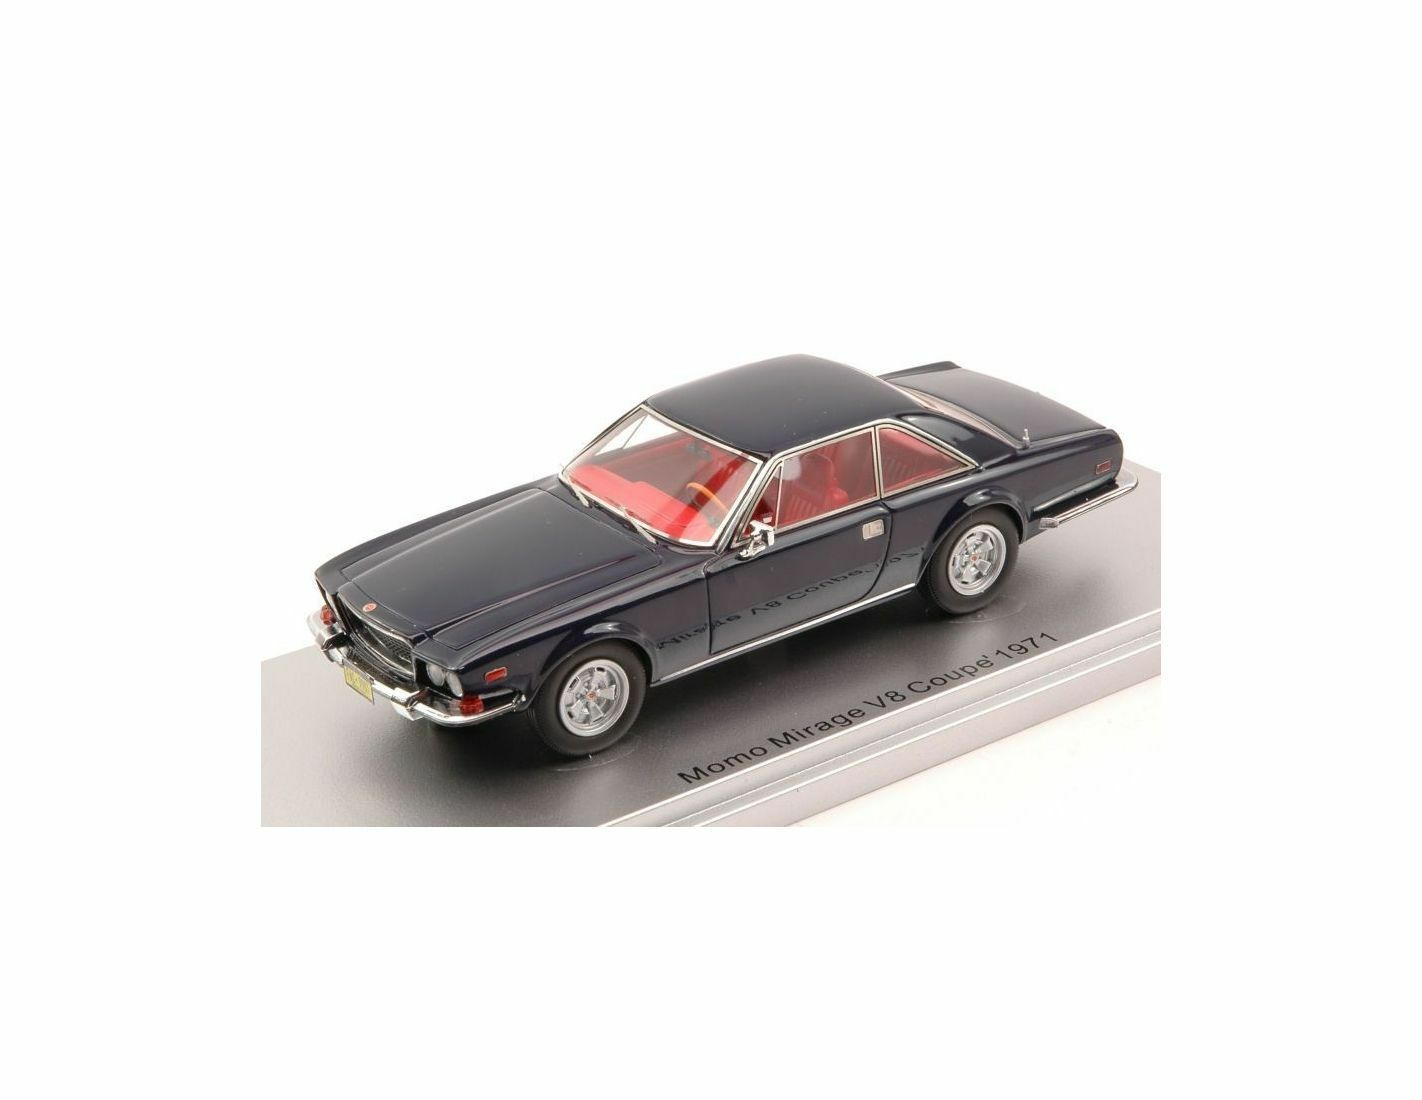 Kess Model KS43033901 MOMO MIRAGE V8 COUPE' 1971 NIGHT blu 1:43 Modellino